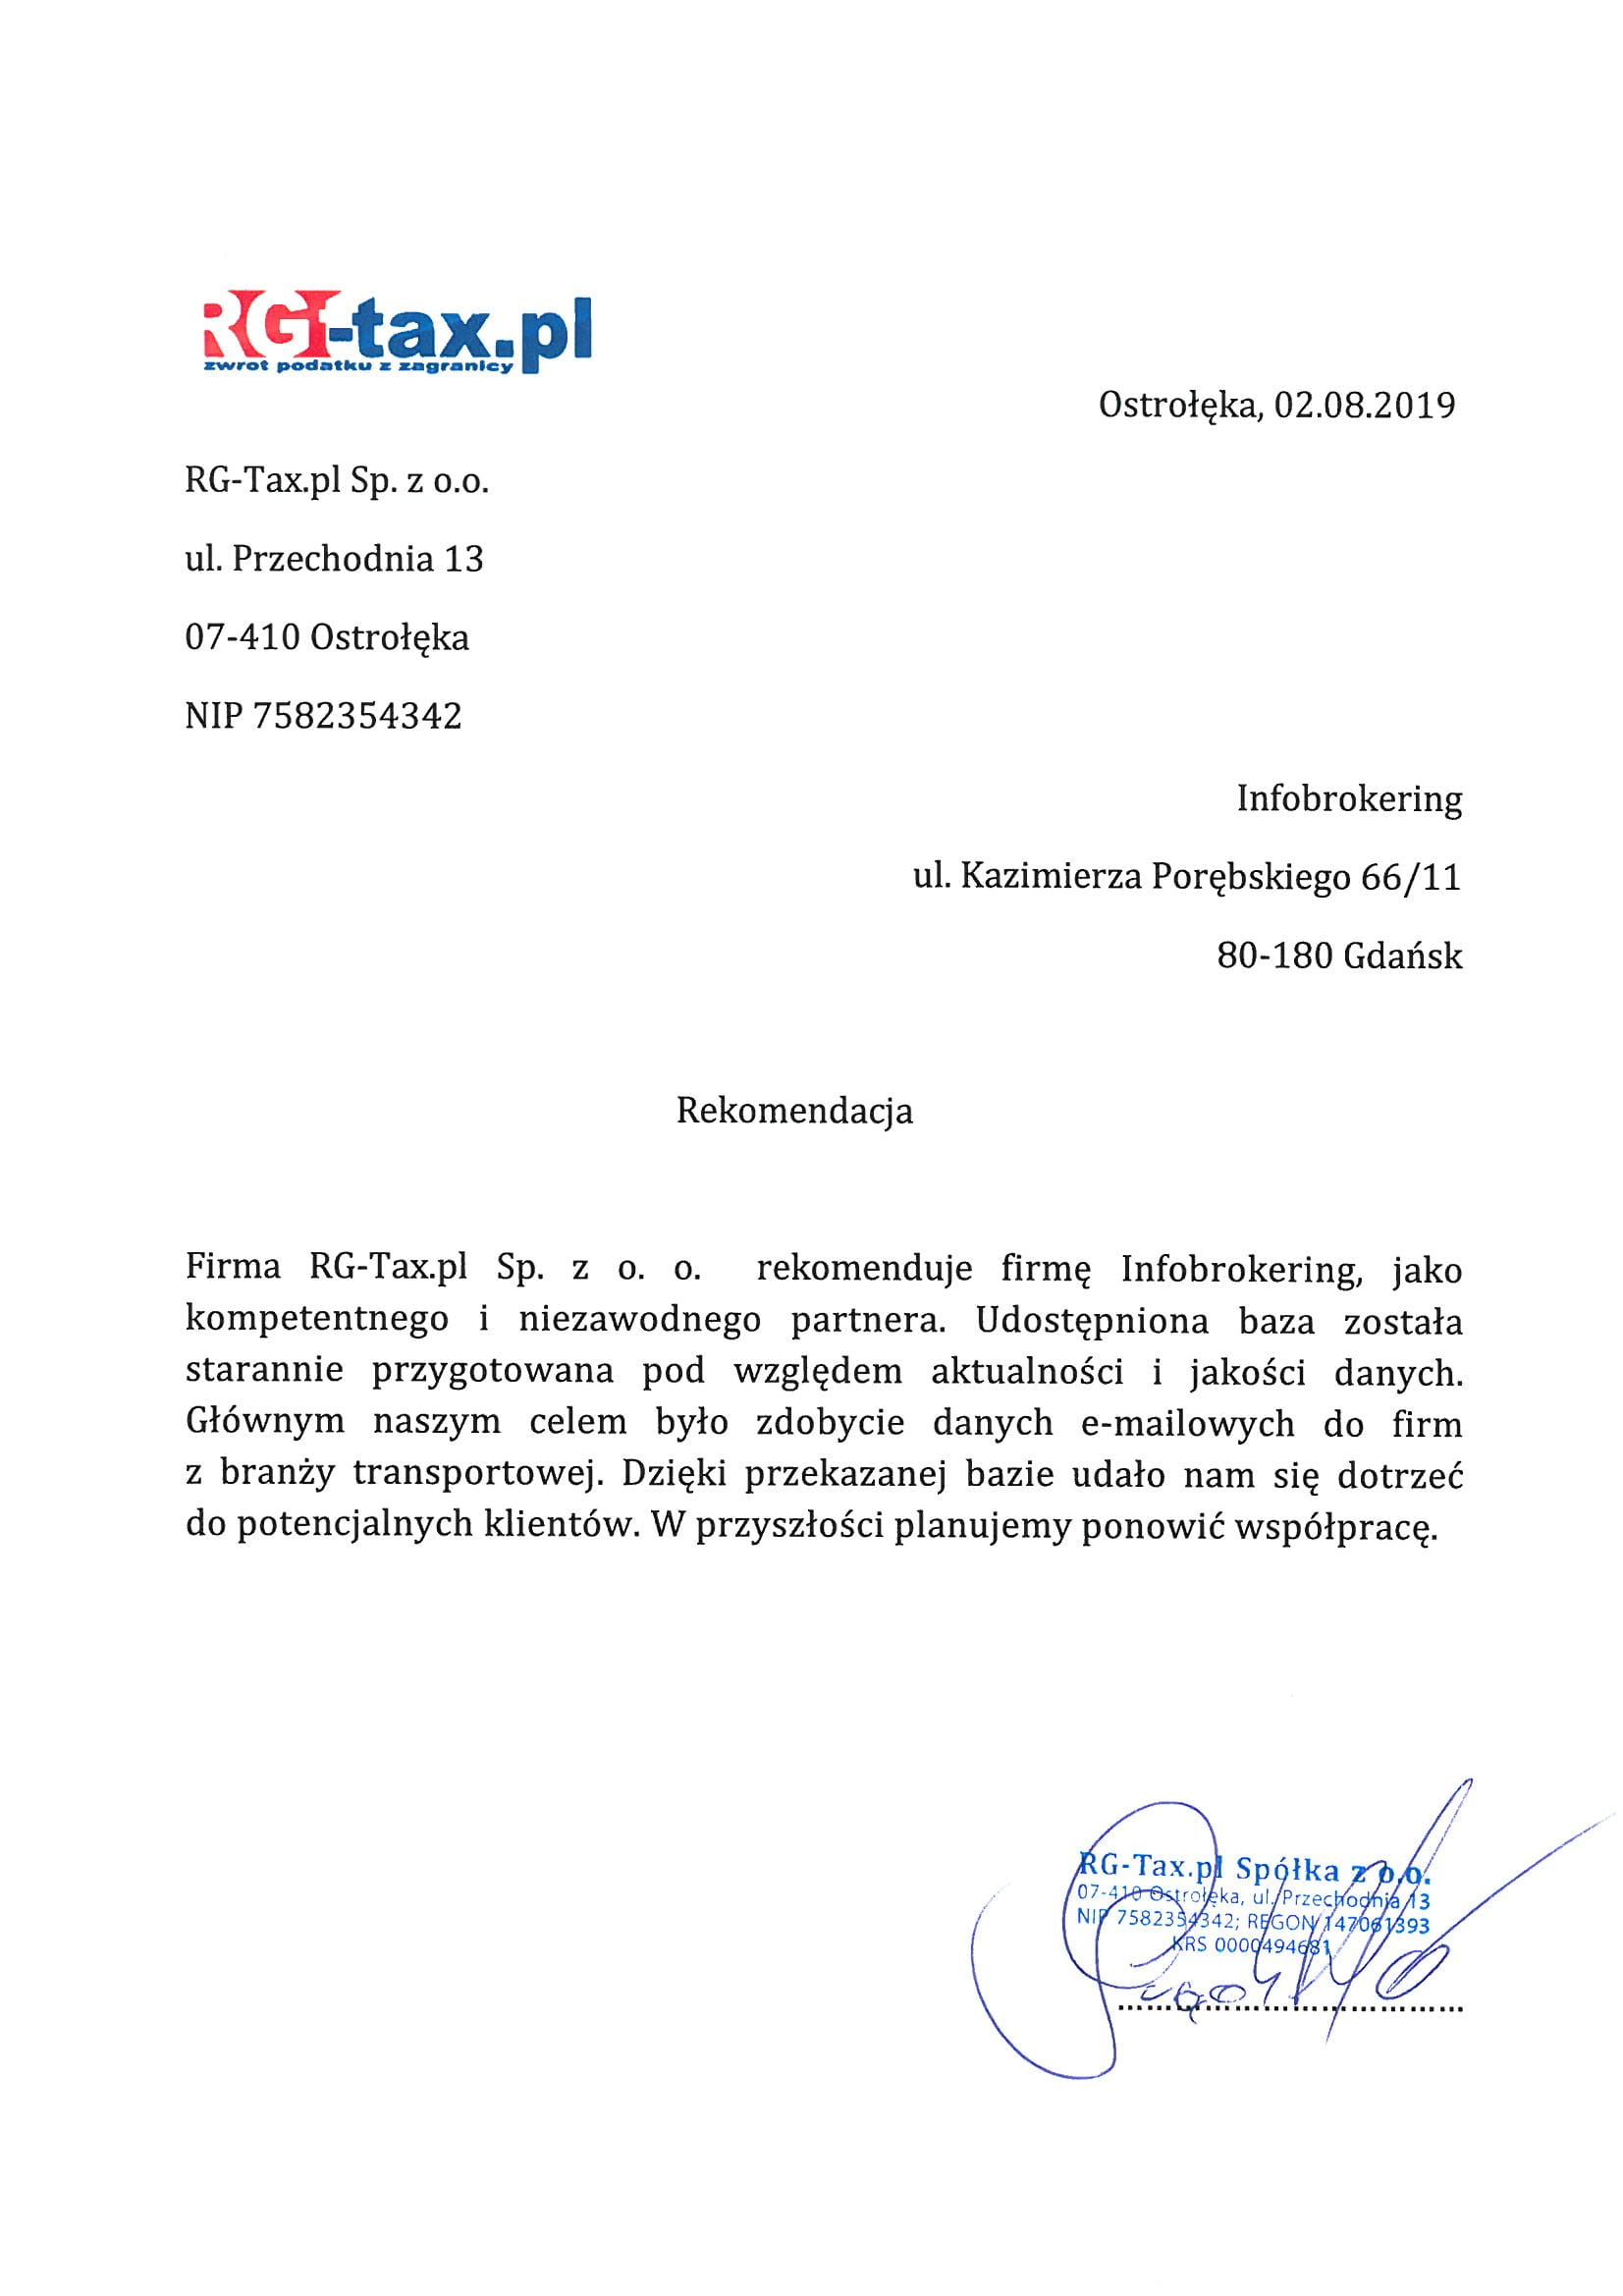 w_yzw_Referencje.rg-tax.02.08.2019-1.jpg